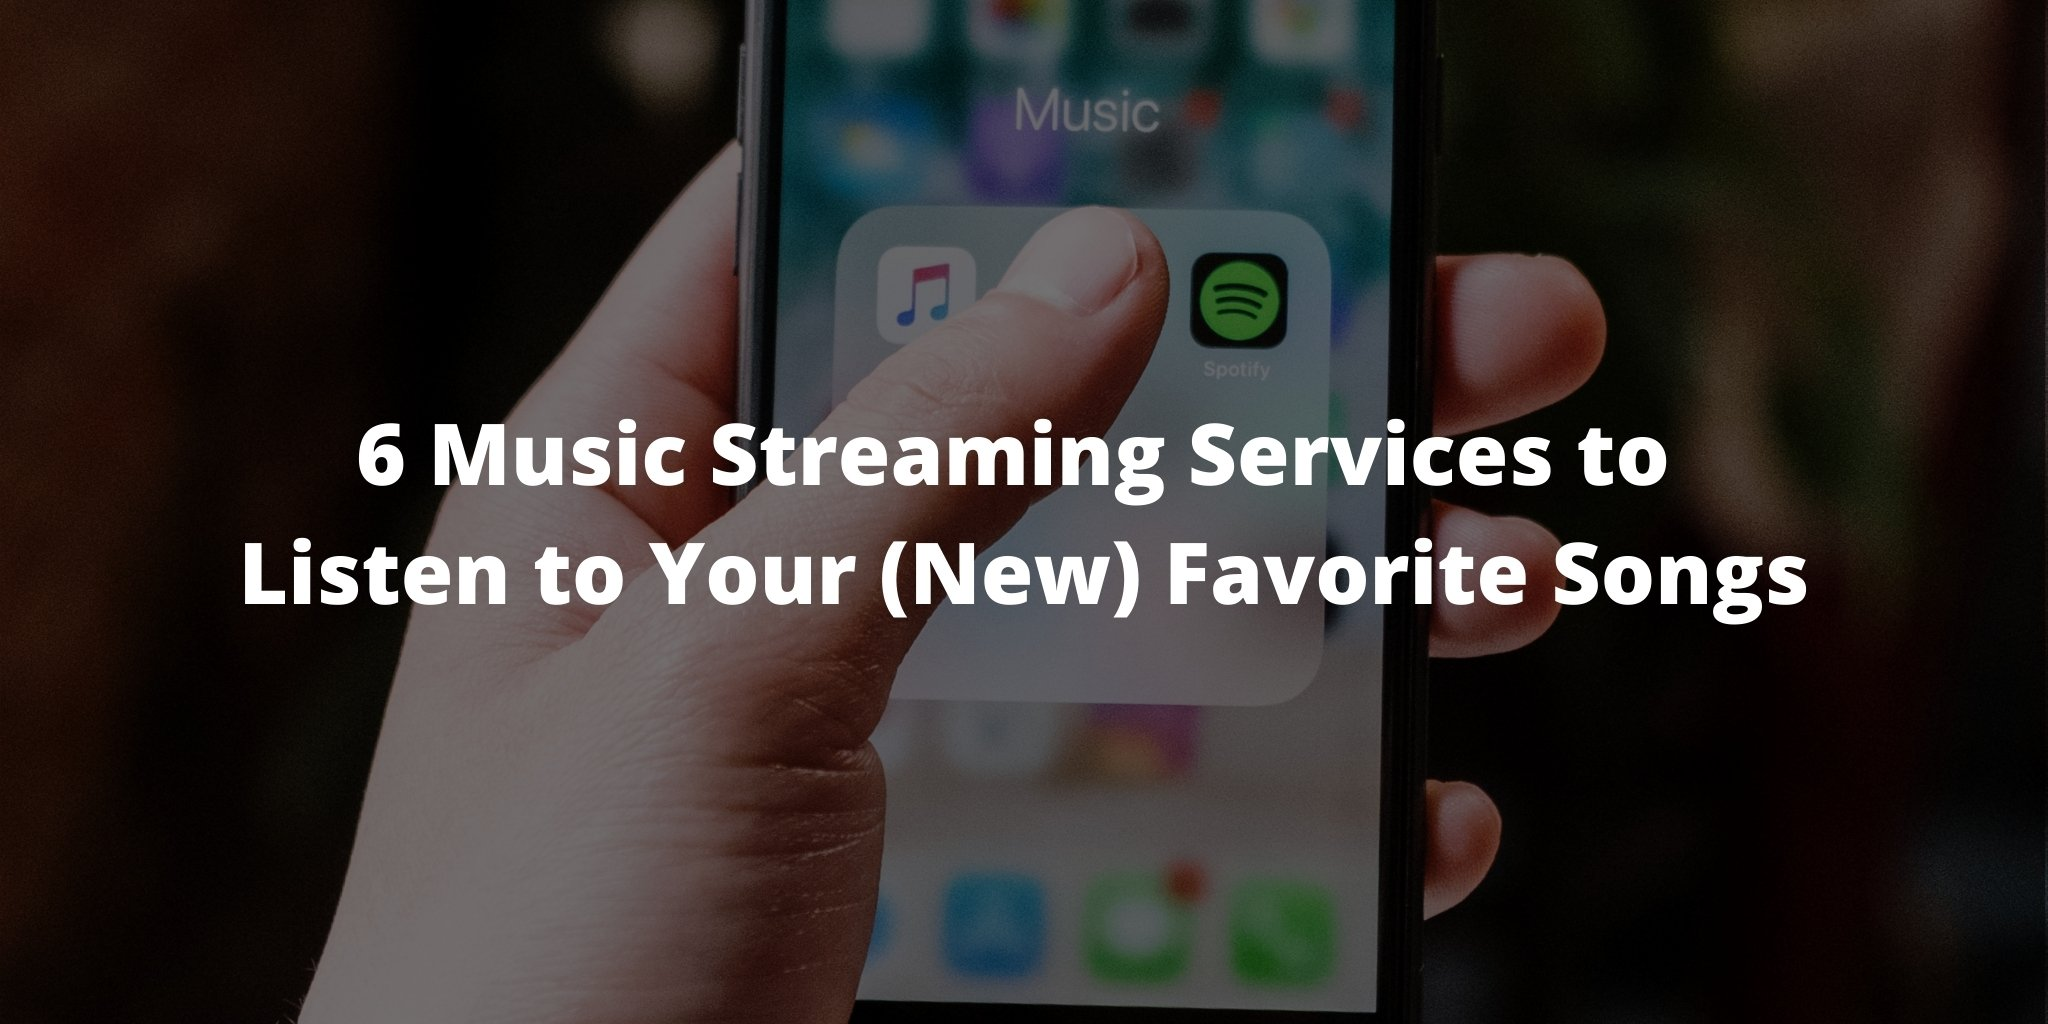 6 Music Streaming Services to Listen to Your (New) Favorite Songs